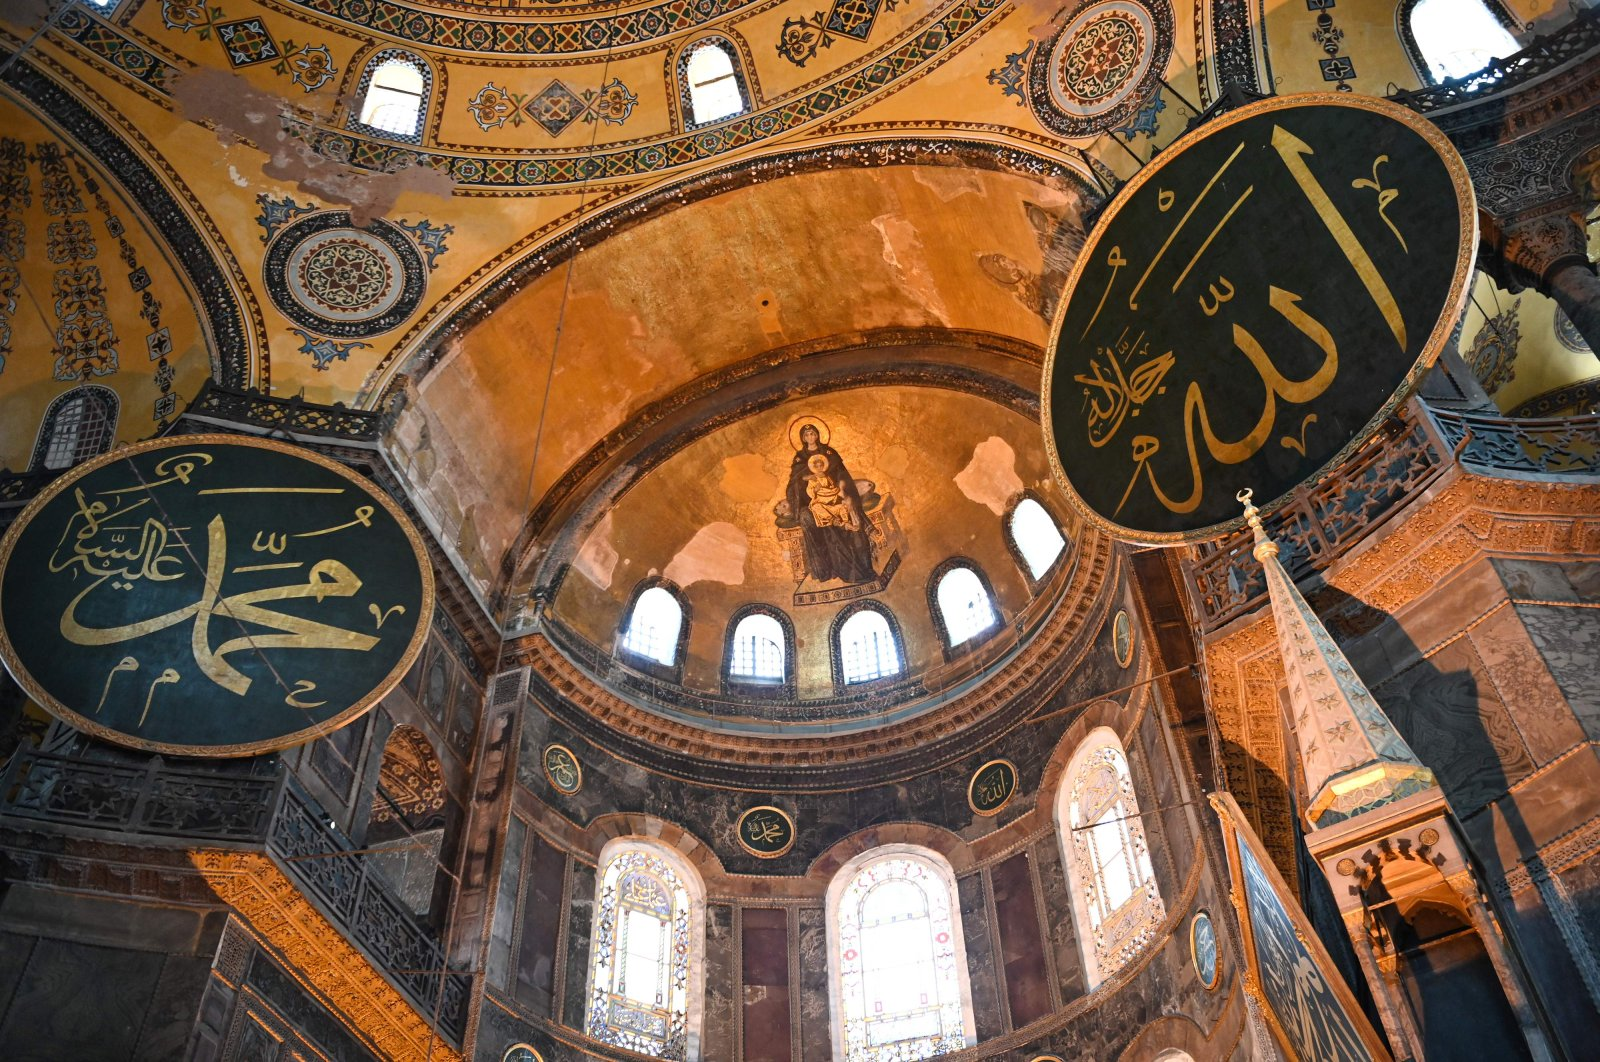 A fresco of the Virgin Mary and child and a calligraphic Roundels with Arabic letters bearing the name of Allah and other Muslim prophets hanging on the dome of the Hagia Sophia Museum in Istanbul, July 2, 2020. (AFP Photo)